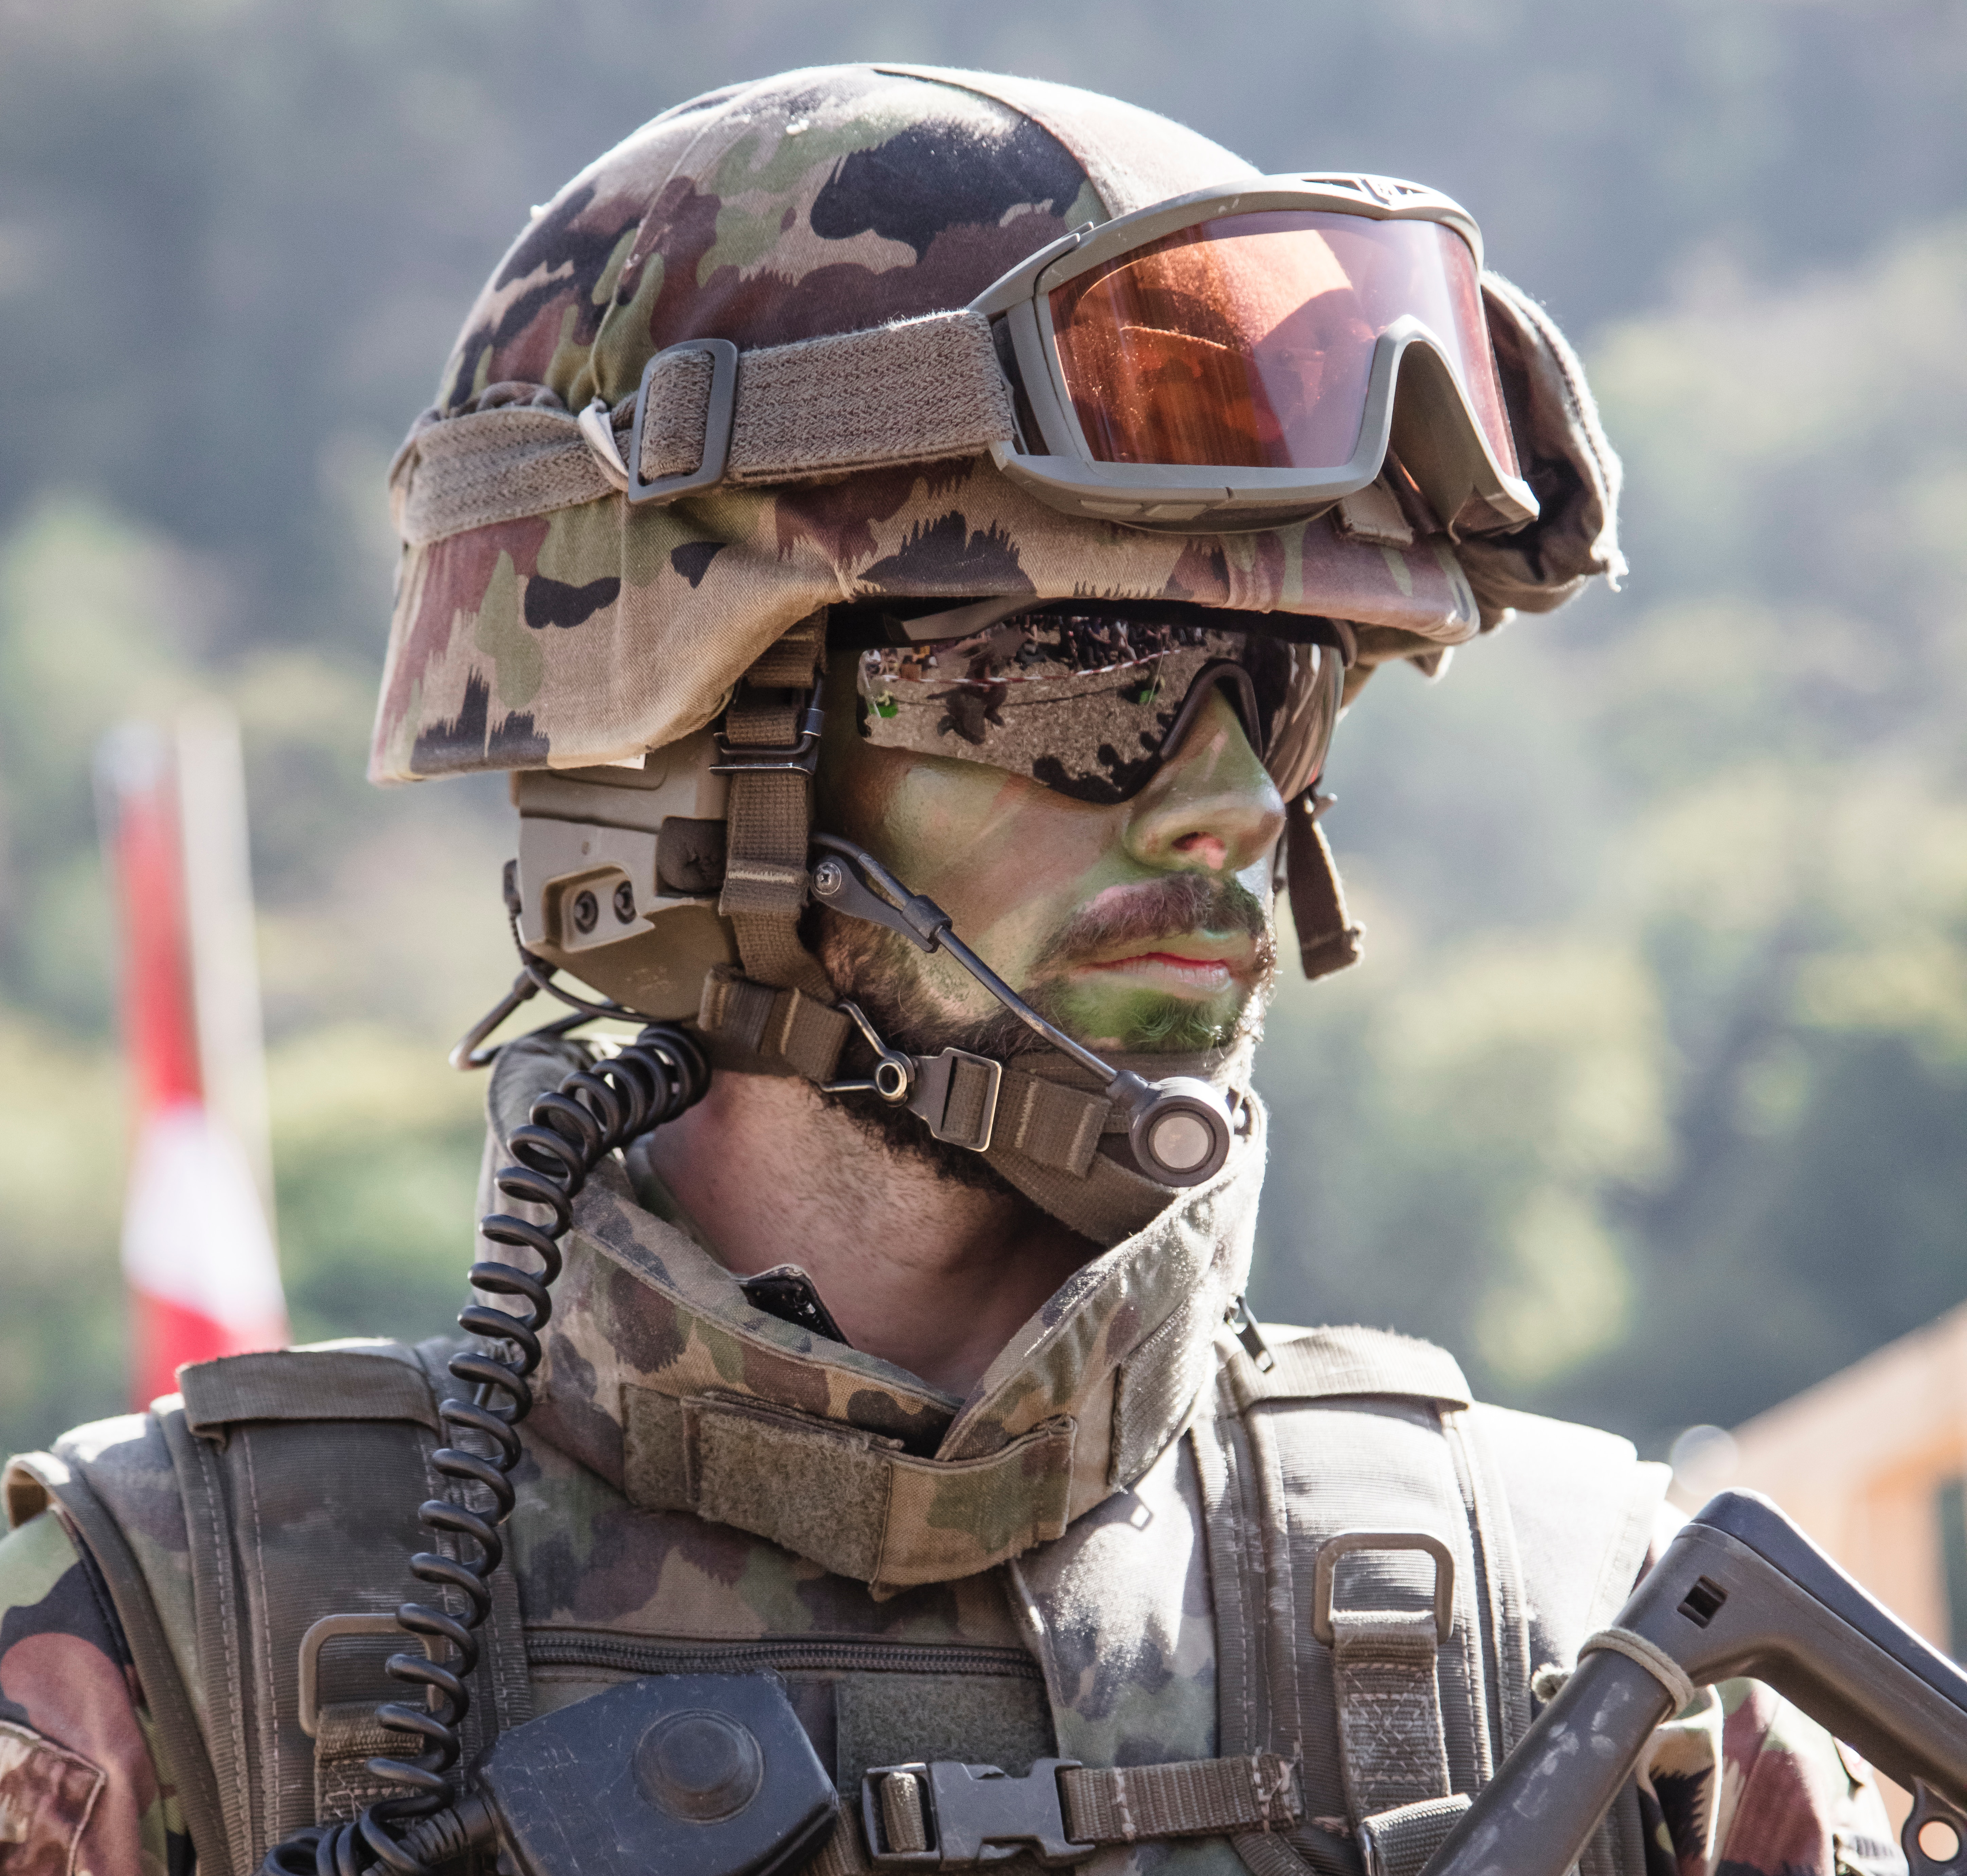 soldier in full camo gear including helmet and goggles